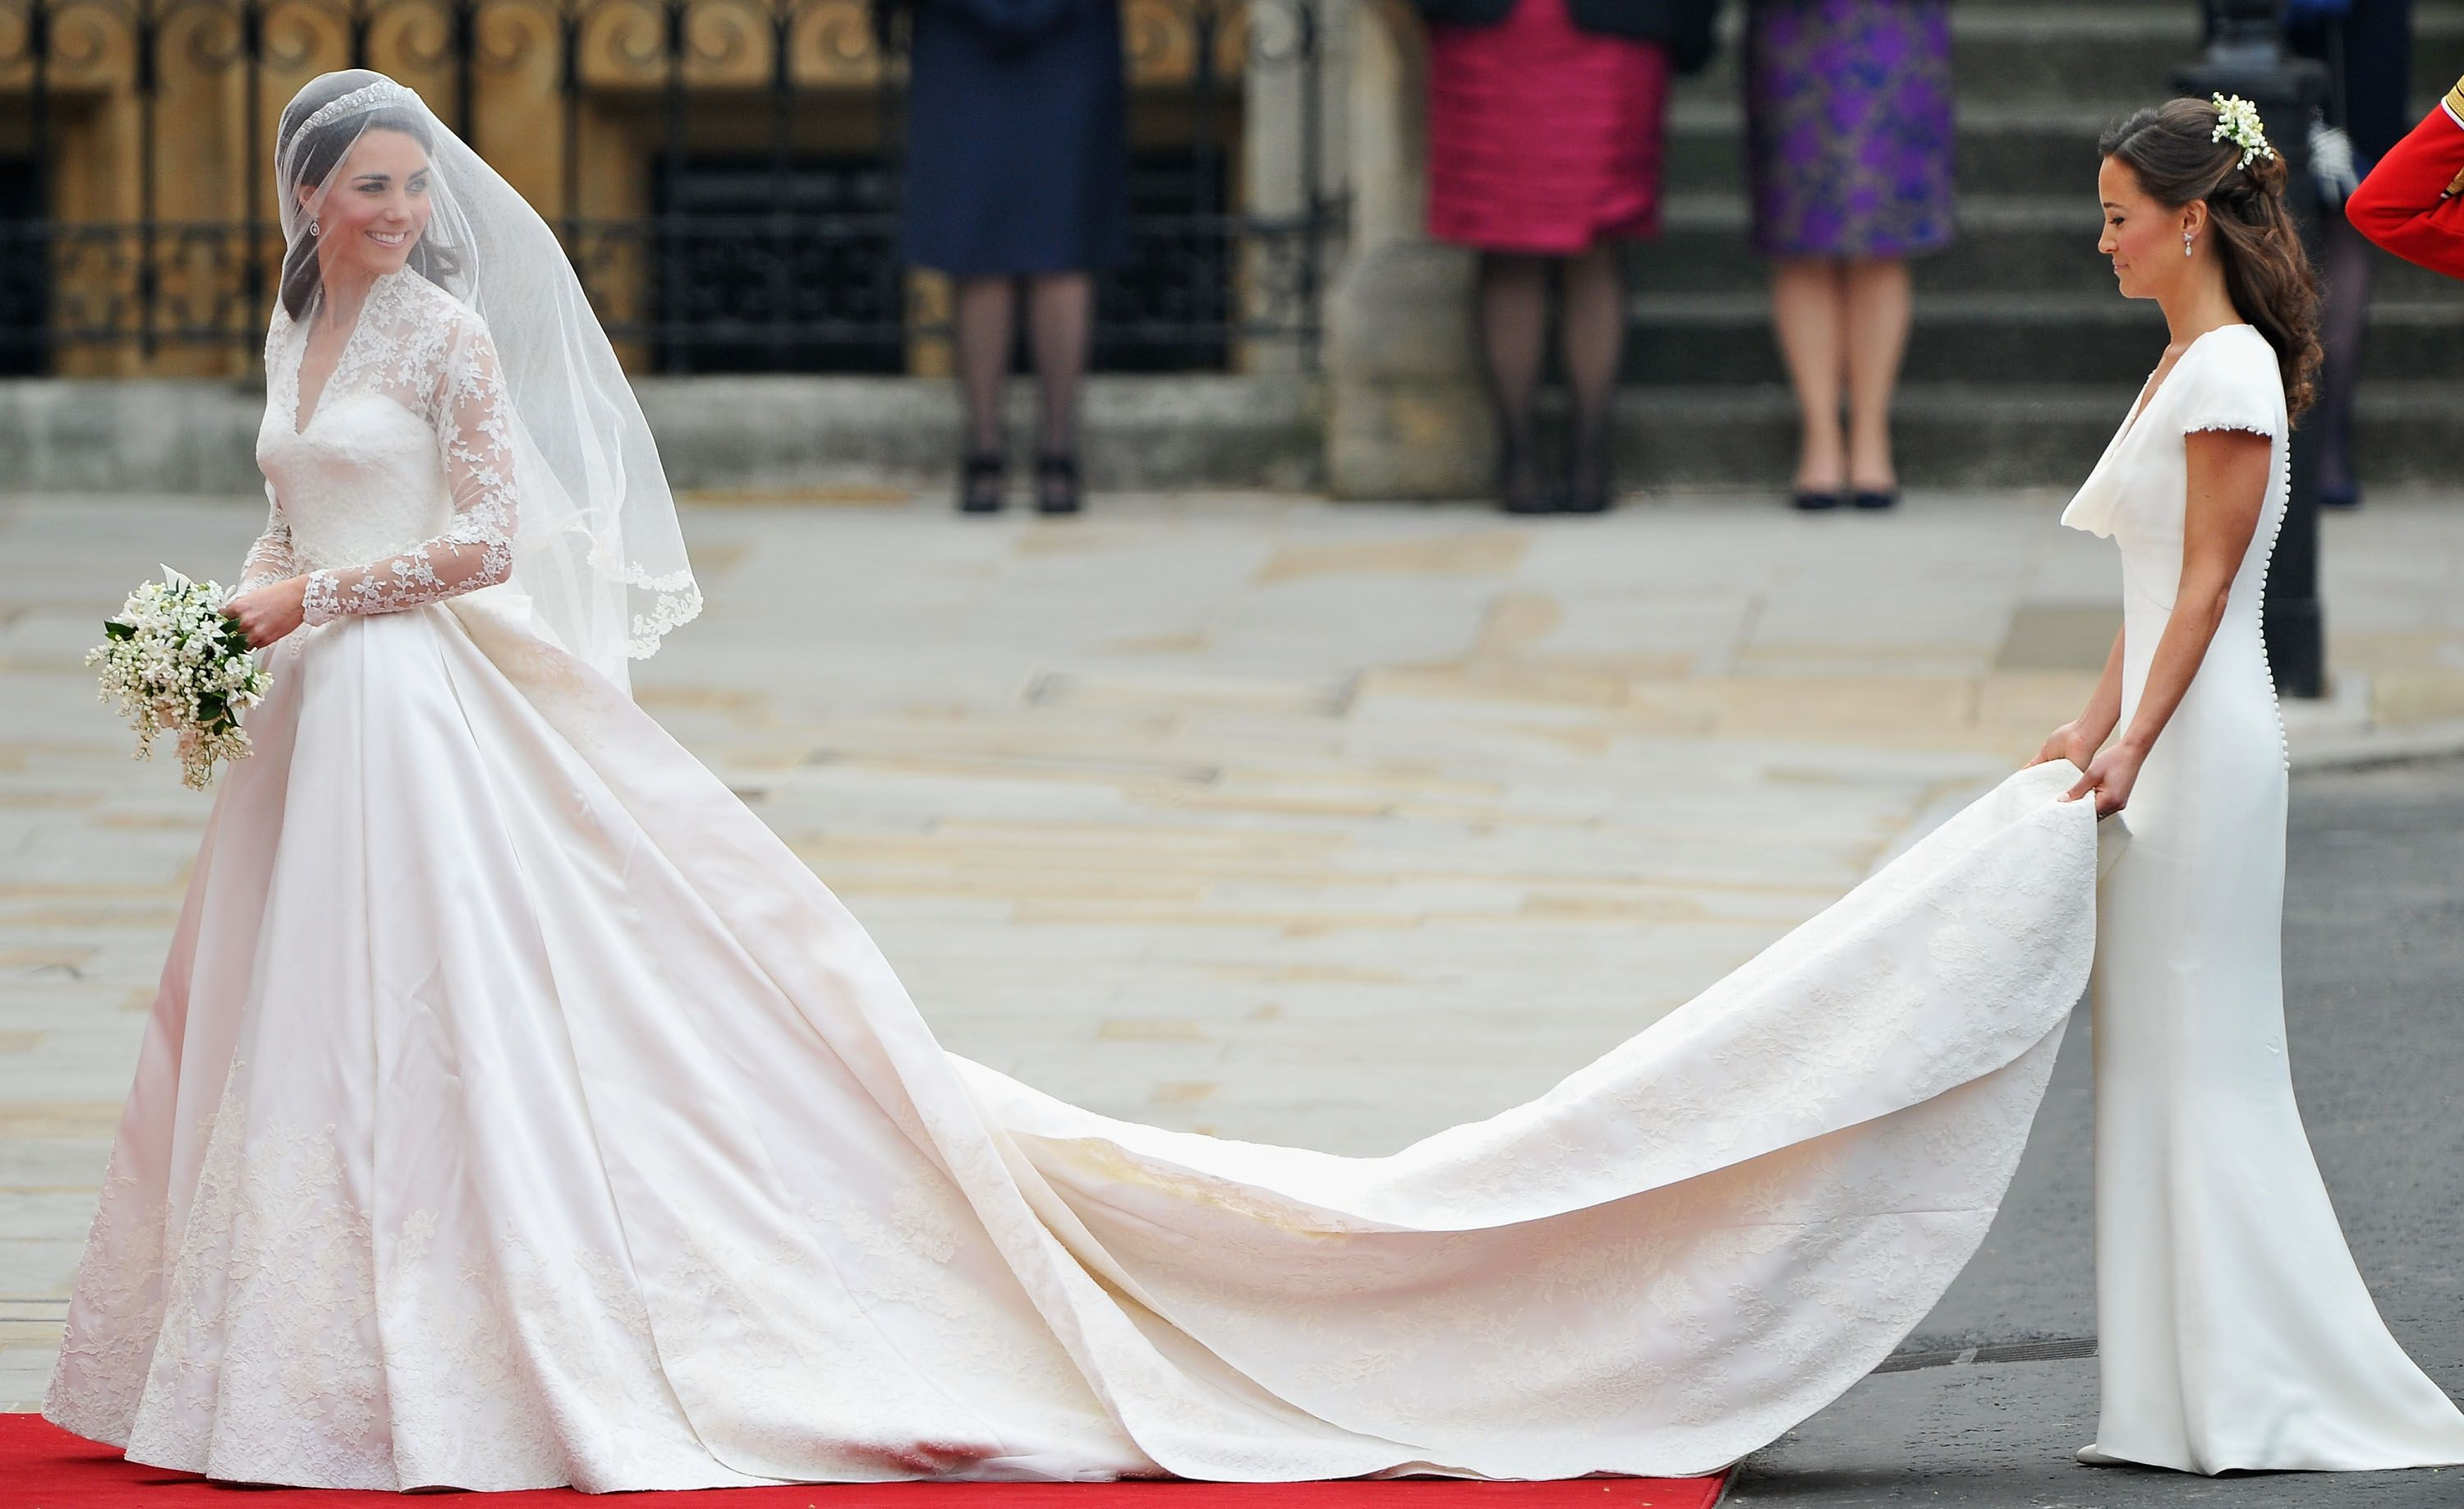 Pippa Middleton S Iconic Bridesmaid Dress Is Now On Sale Pippa